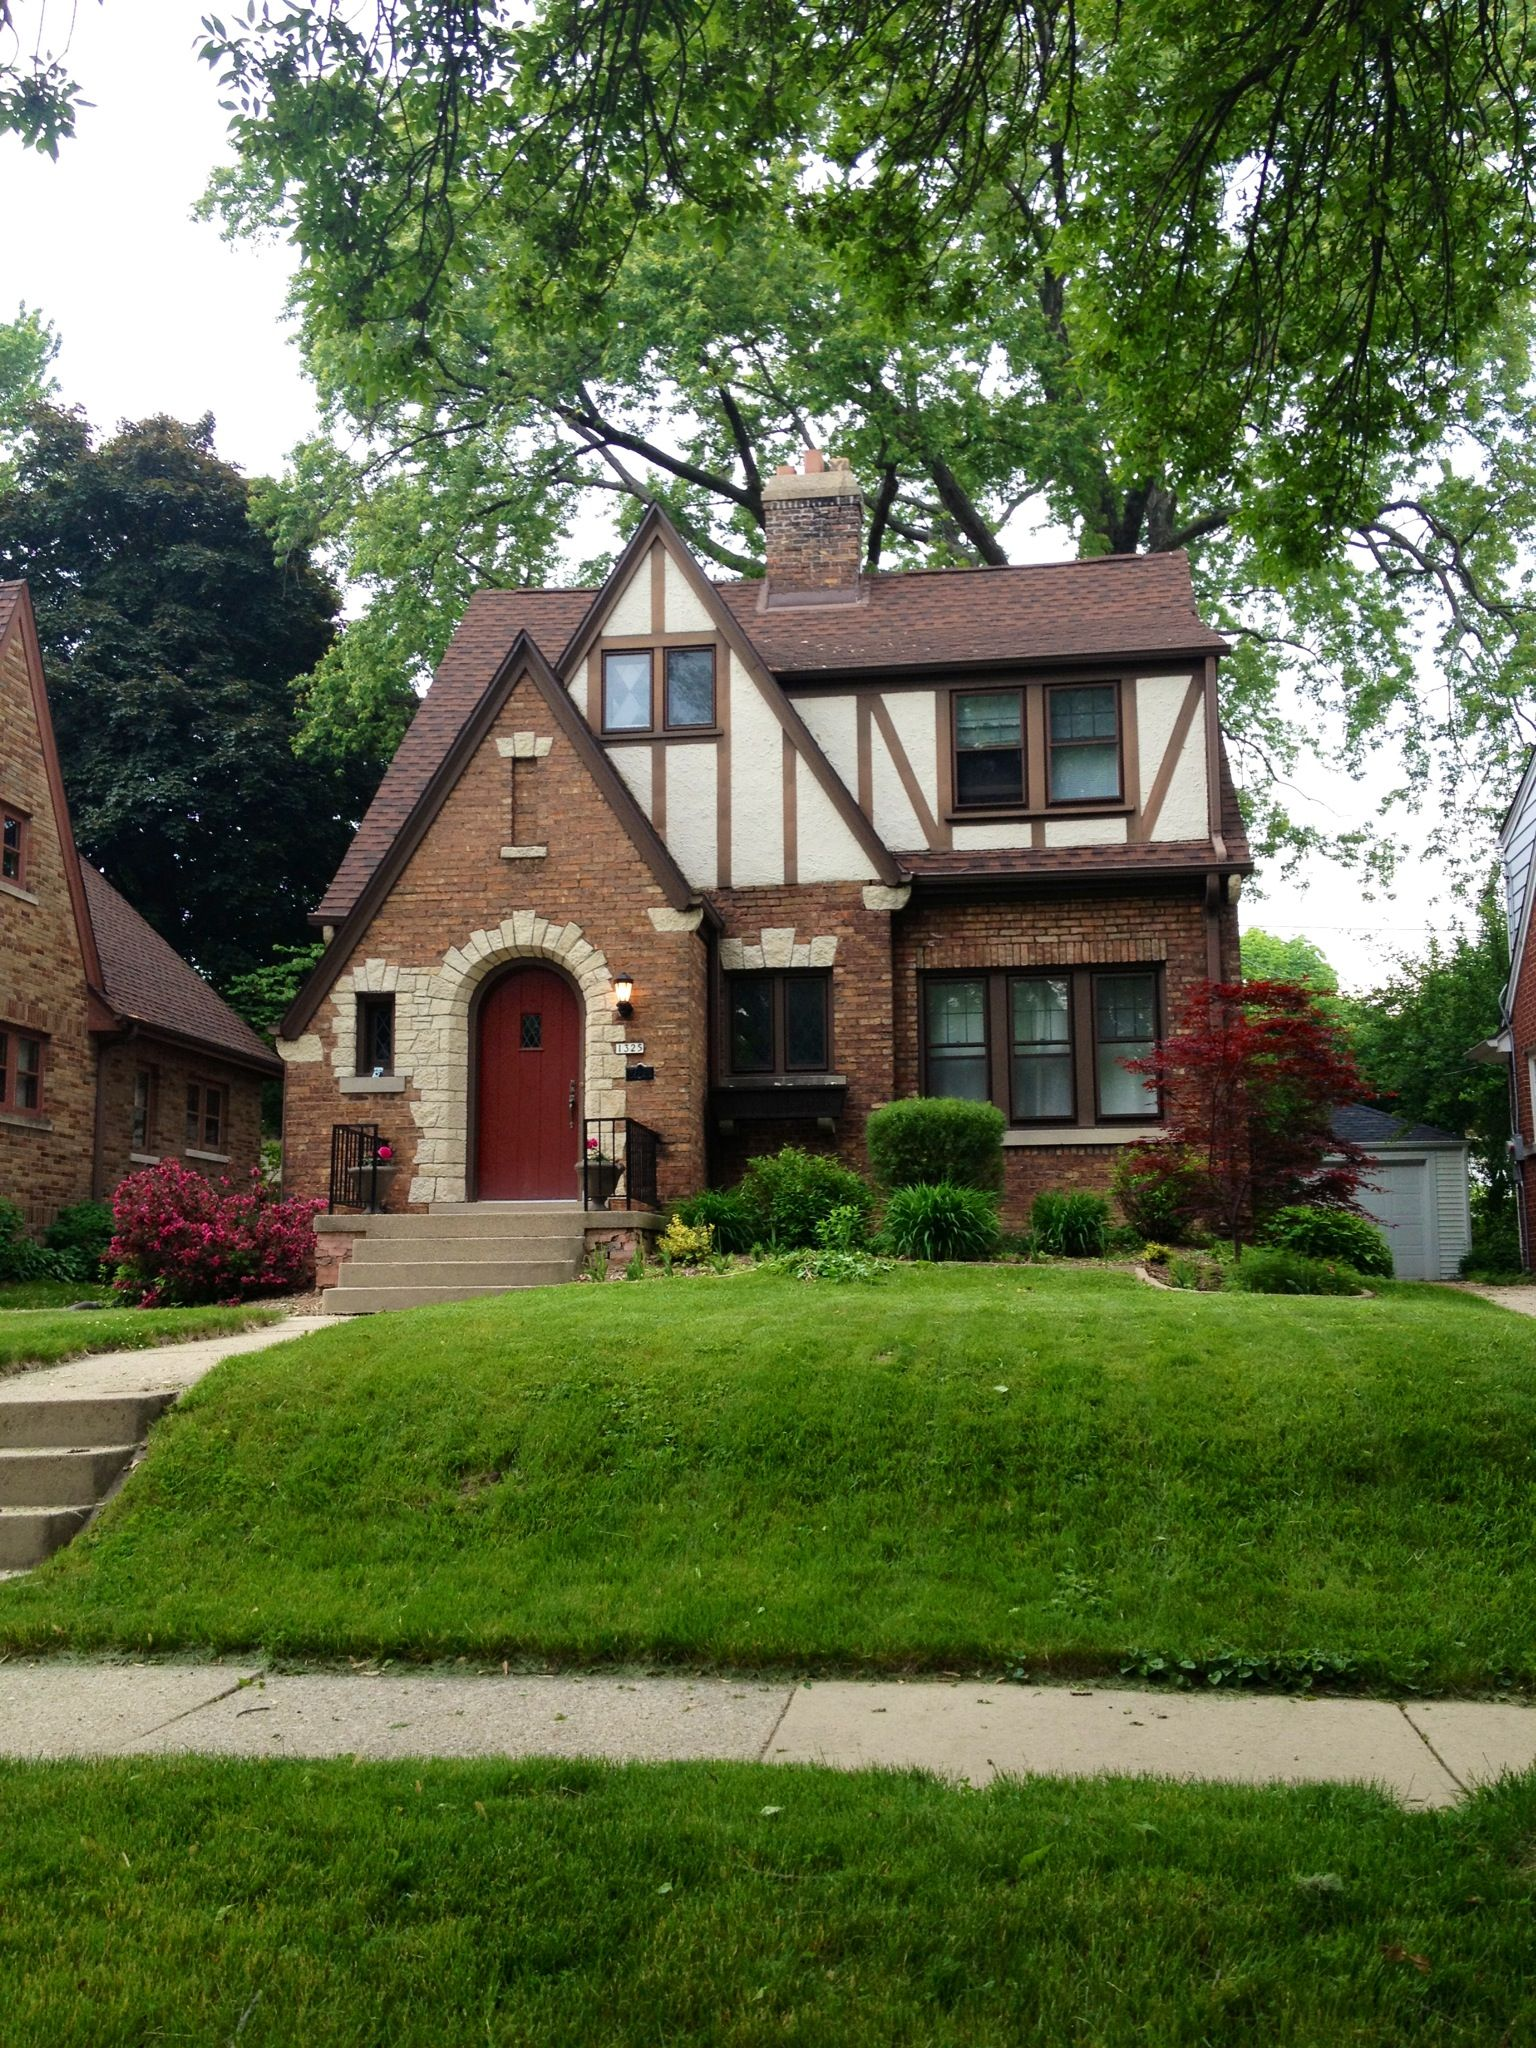 Adorable tudor style home reminds me of sugarhouse ut for Cottage architecture